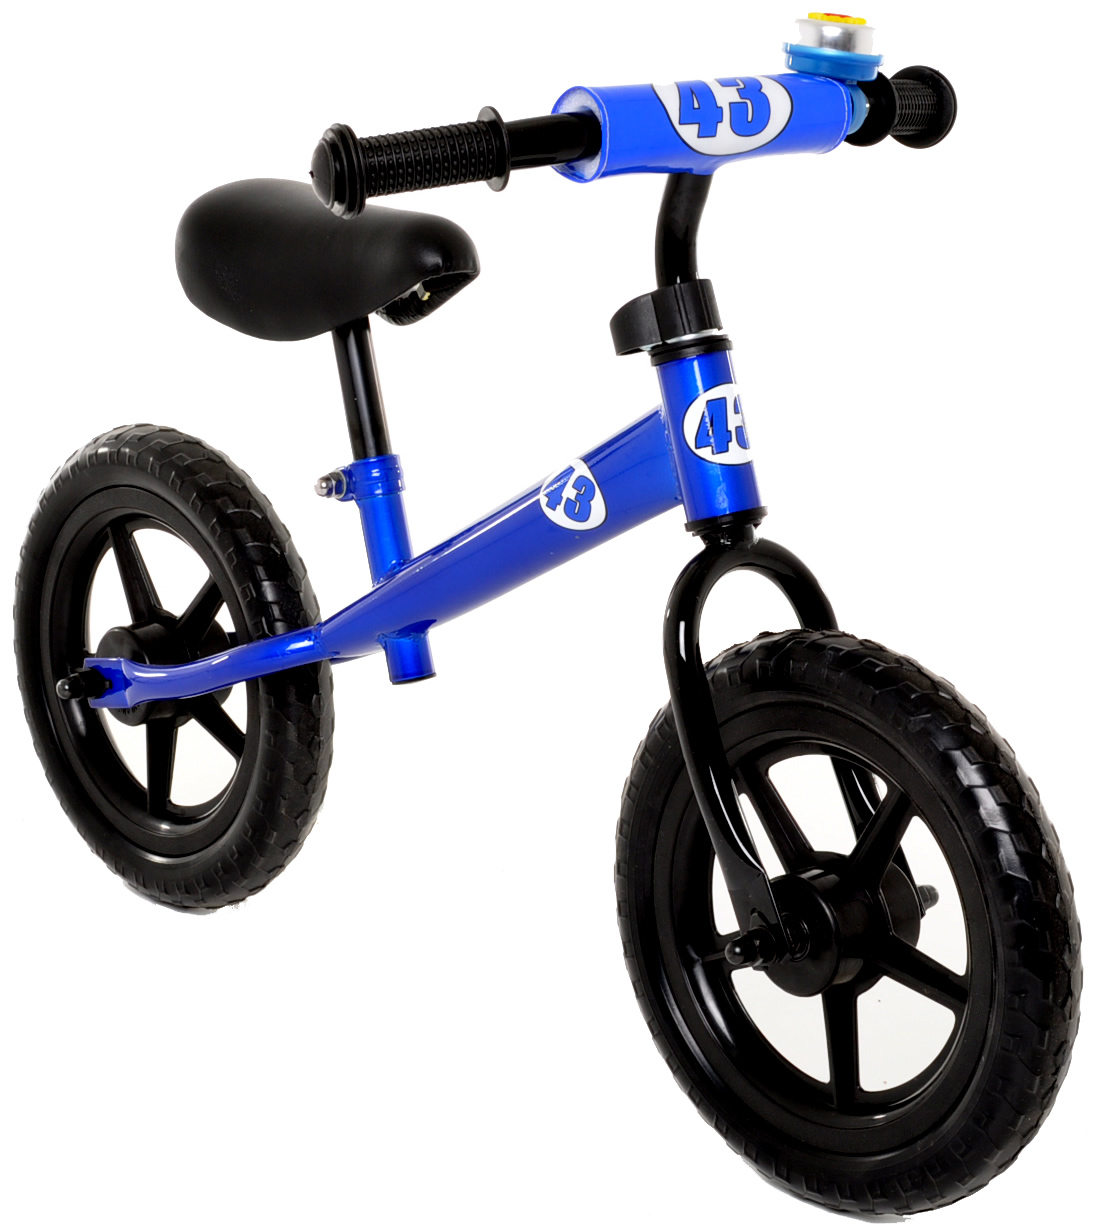 Vilano Children's No Pedal Push Balance Bike